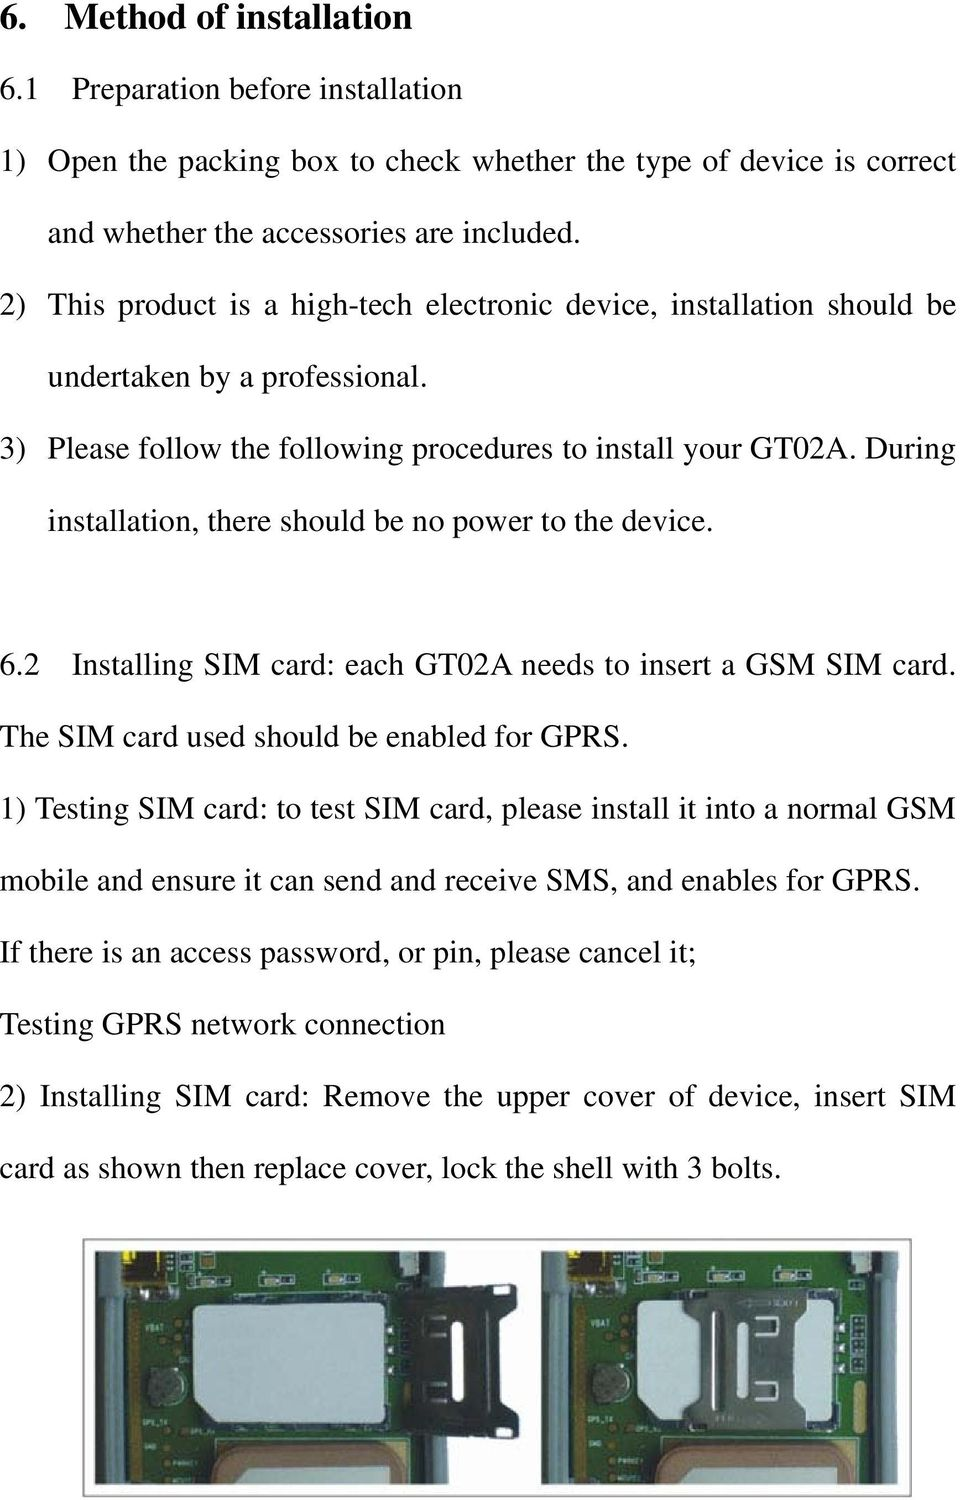 GPS Vehicle Tracker (GPS+GSM+GPRS) User Manual (Version 1 2) - PDF